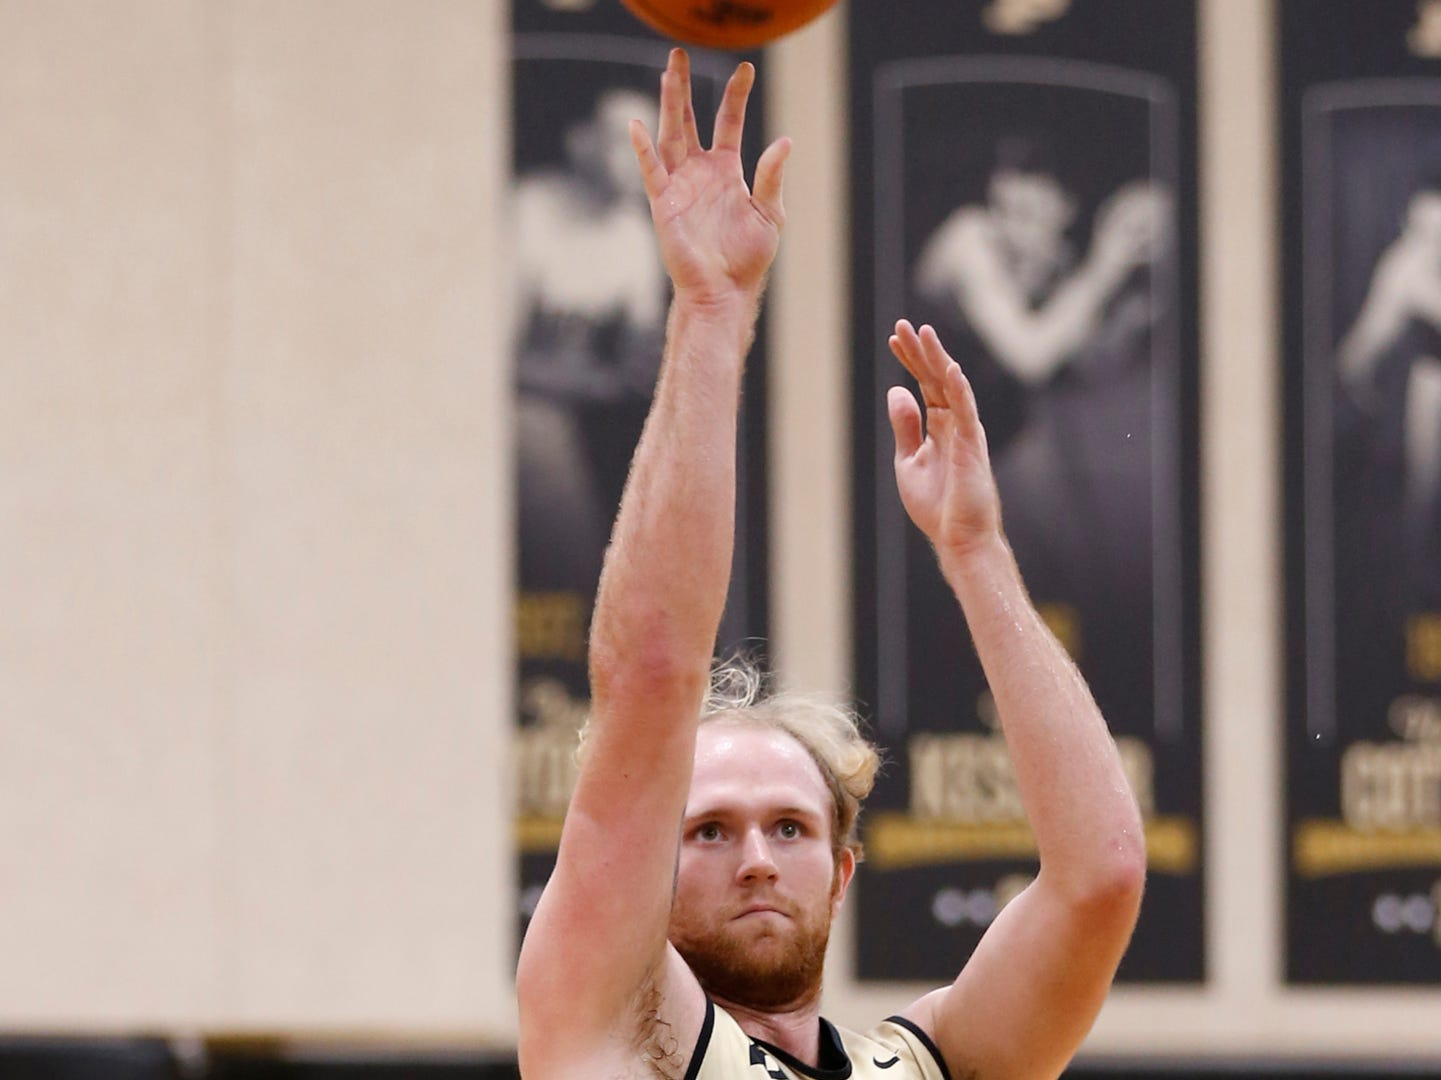 Evan Boudreaux puts up a shot during the first official practice of the season for Purdue men's basketball Tuesday, September 25, 2018, at Cardinal Court in Mackey Arena.